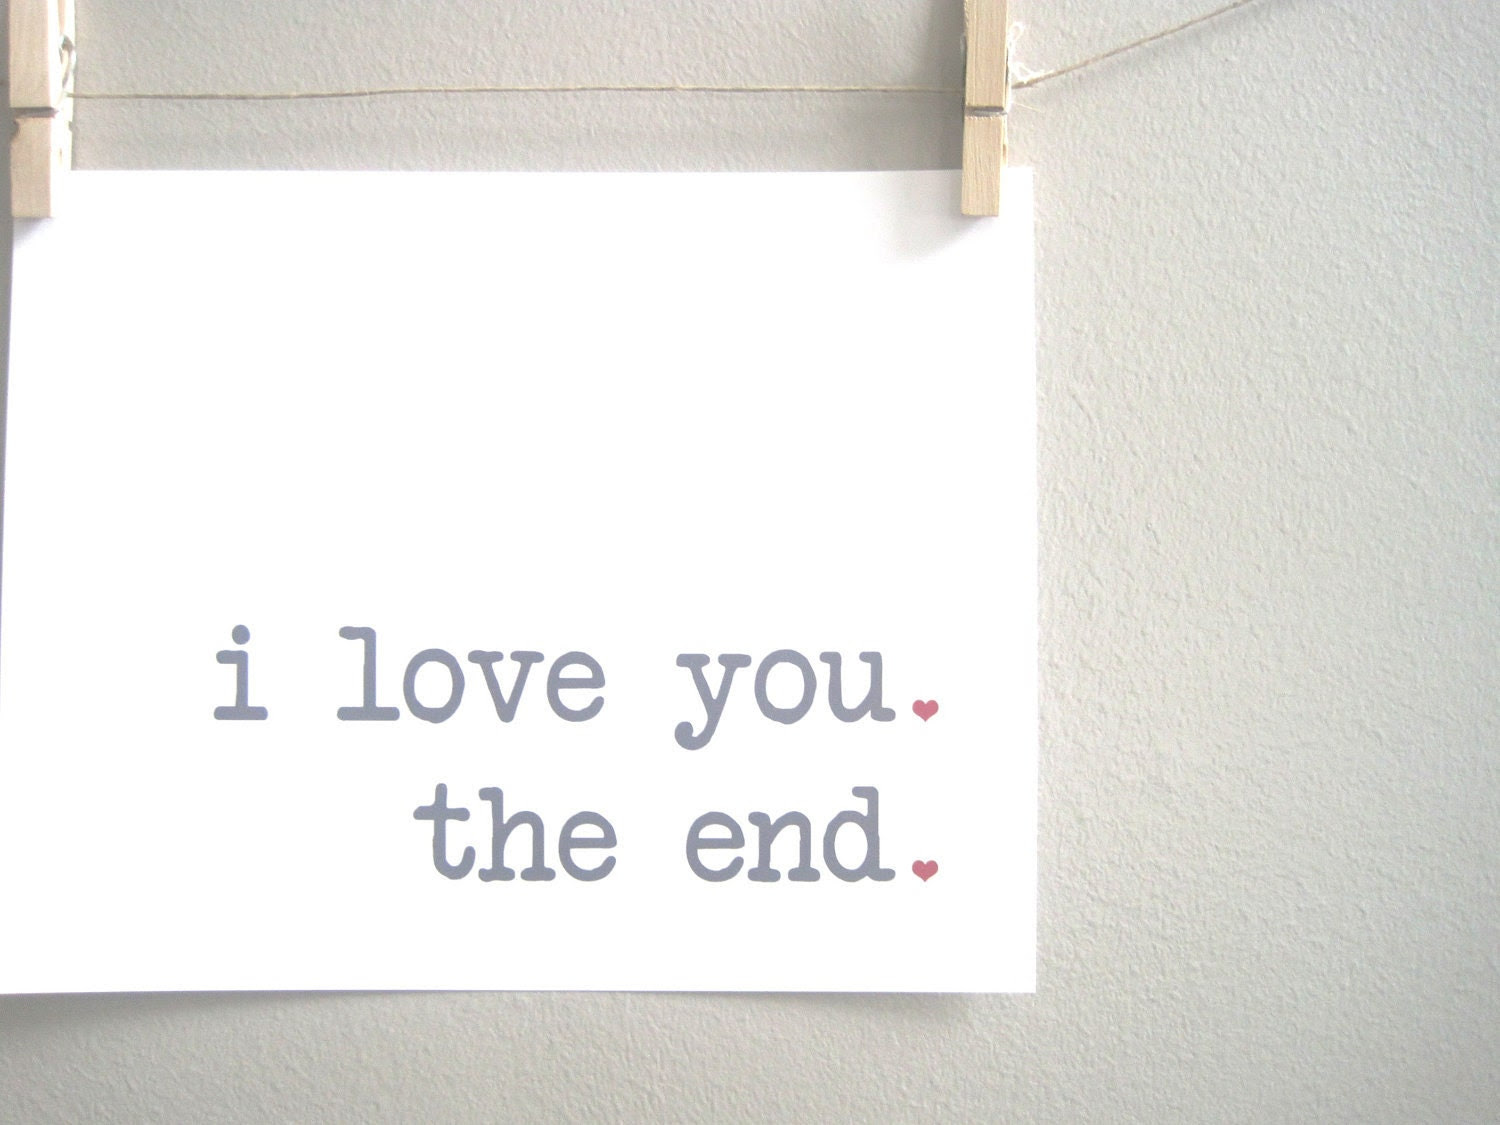 Love Print, Love Story Print, Valentine Print, 8x10 Print, Red, Heart, I Love You. The End.